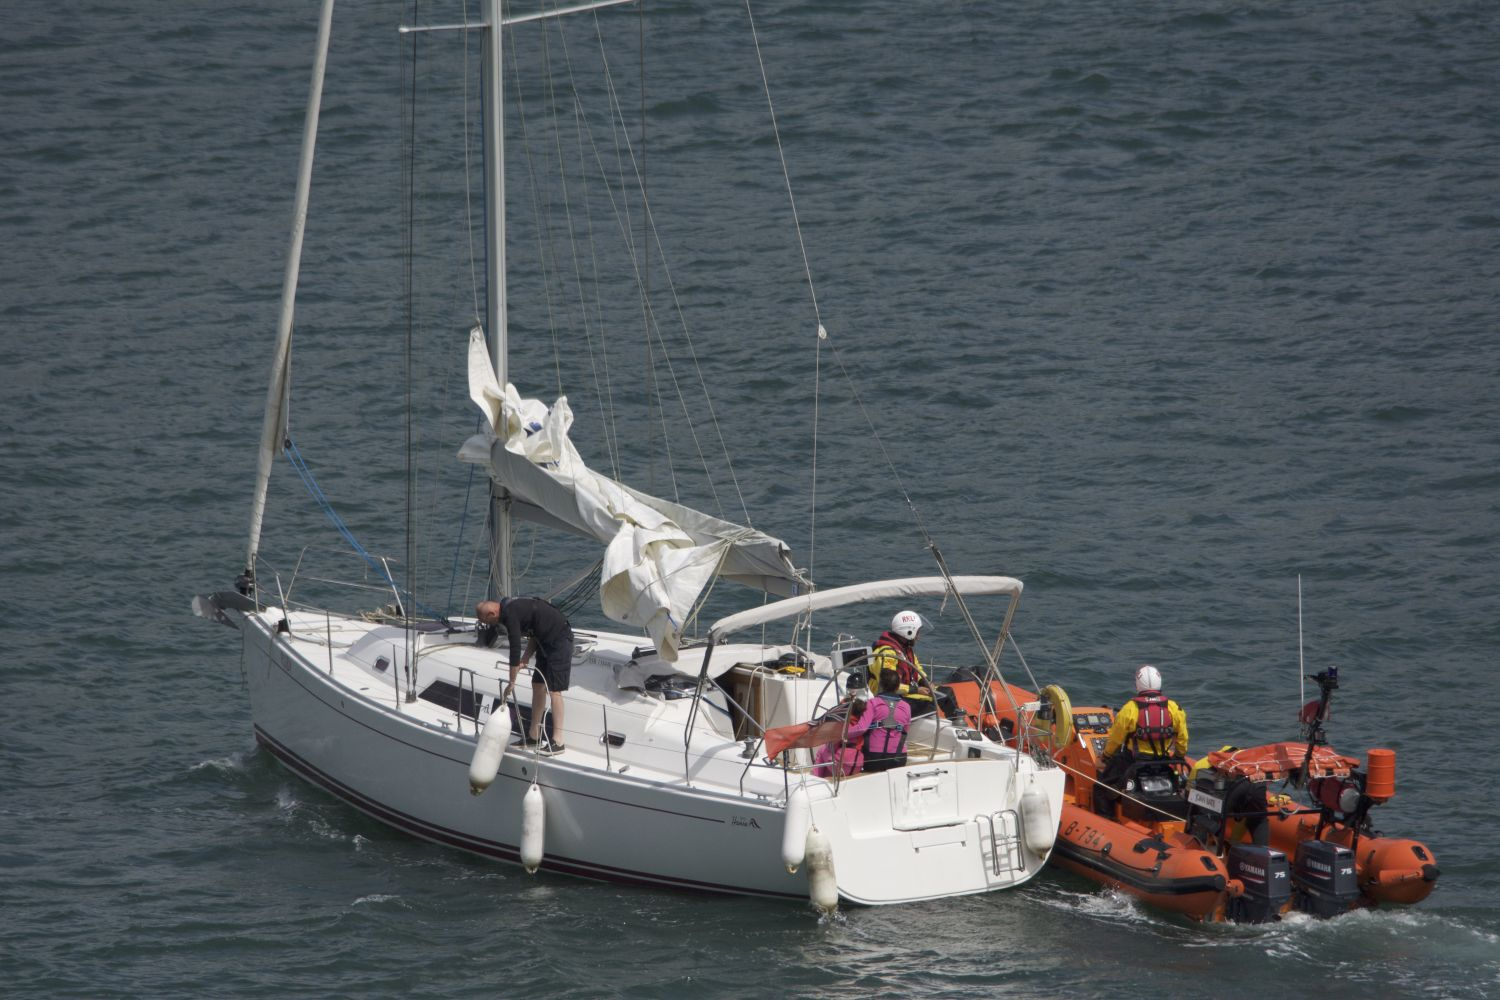 37ft yacht under tow after having been plucked from the rocks